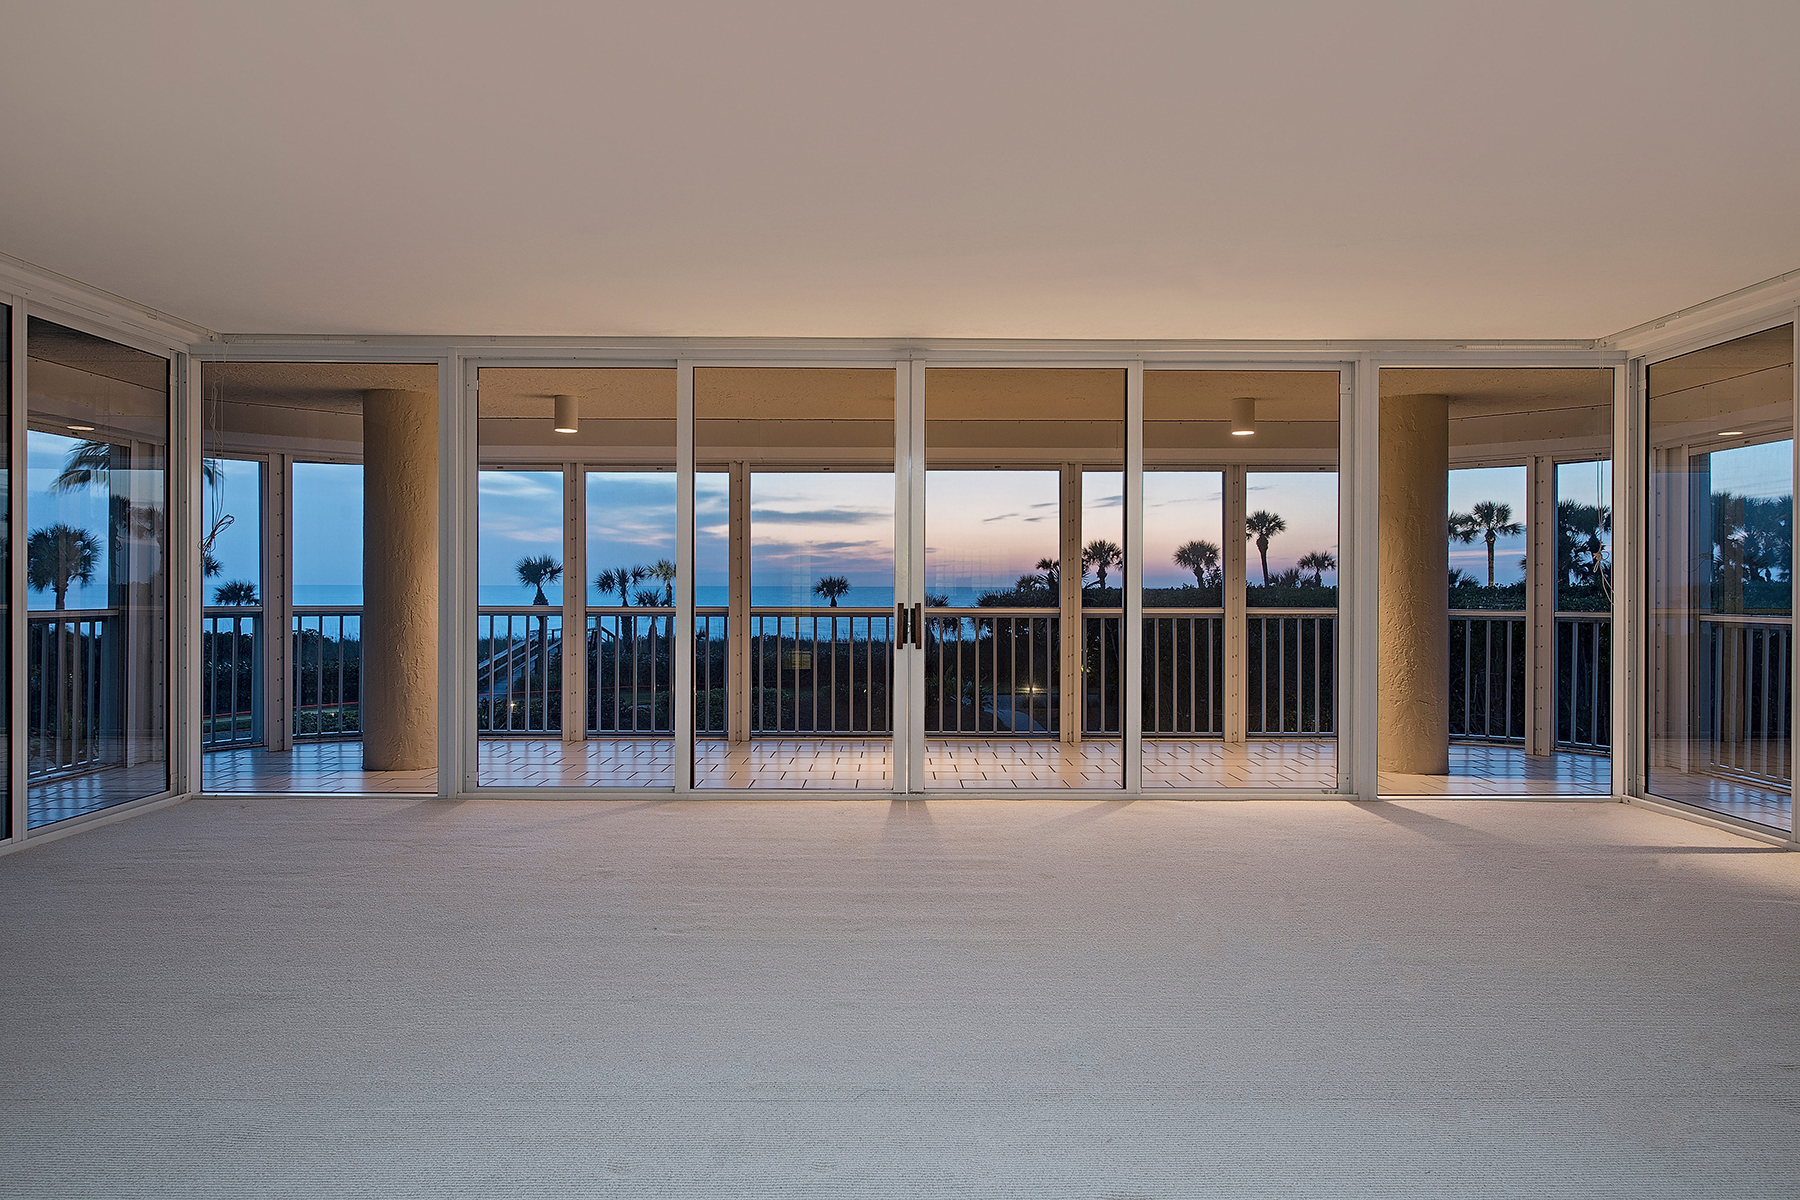 Condominium for Sale at NAPLES CAY - BEACH HOUSE 20 Seagate Dr 102 Naples, Florida, 34103 United States